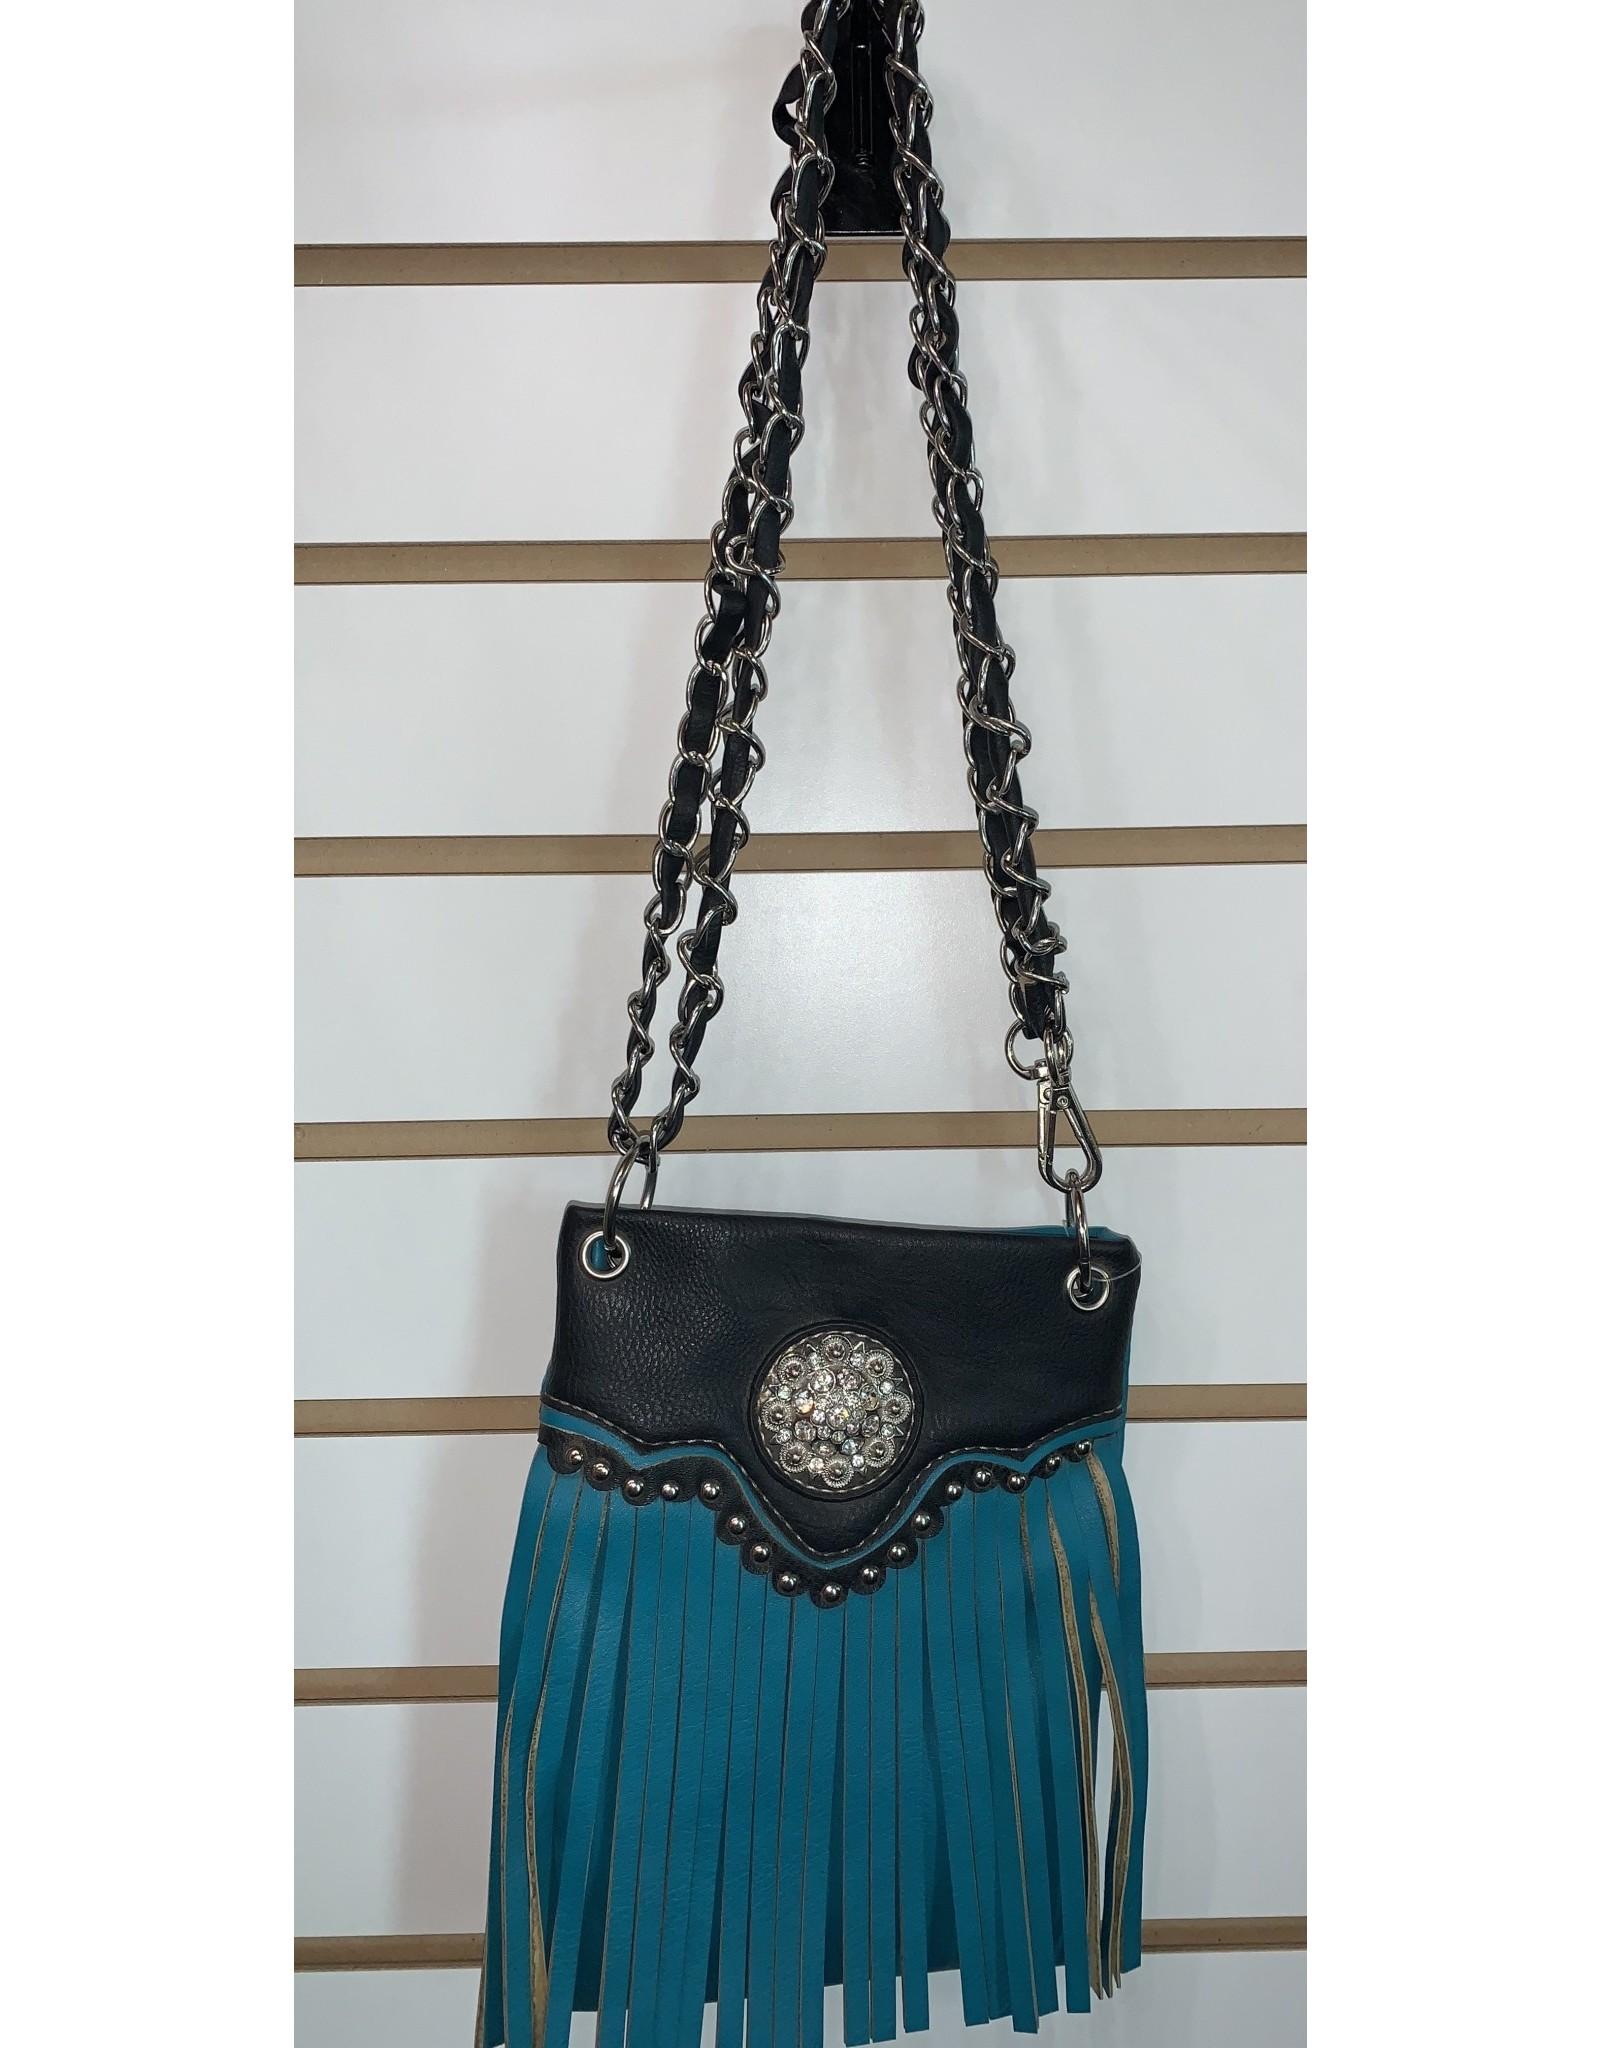 The Chic Bay Crossbody- Chic Fringe Teal/Black